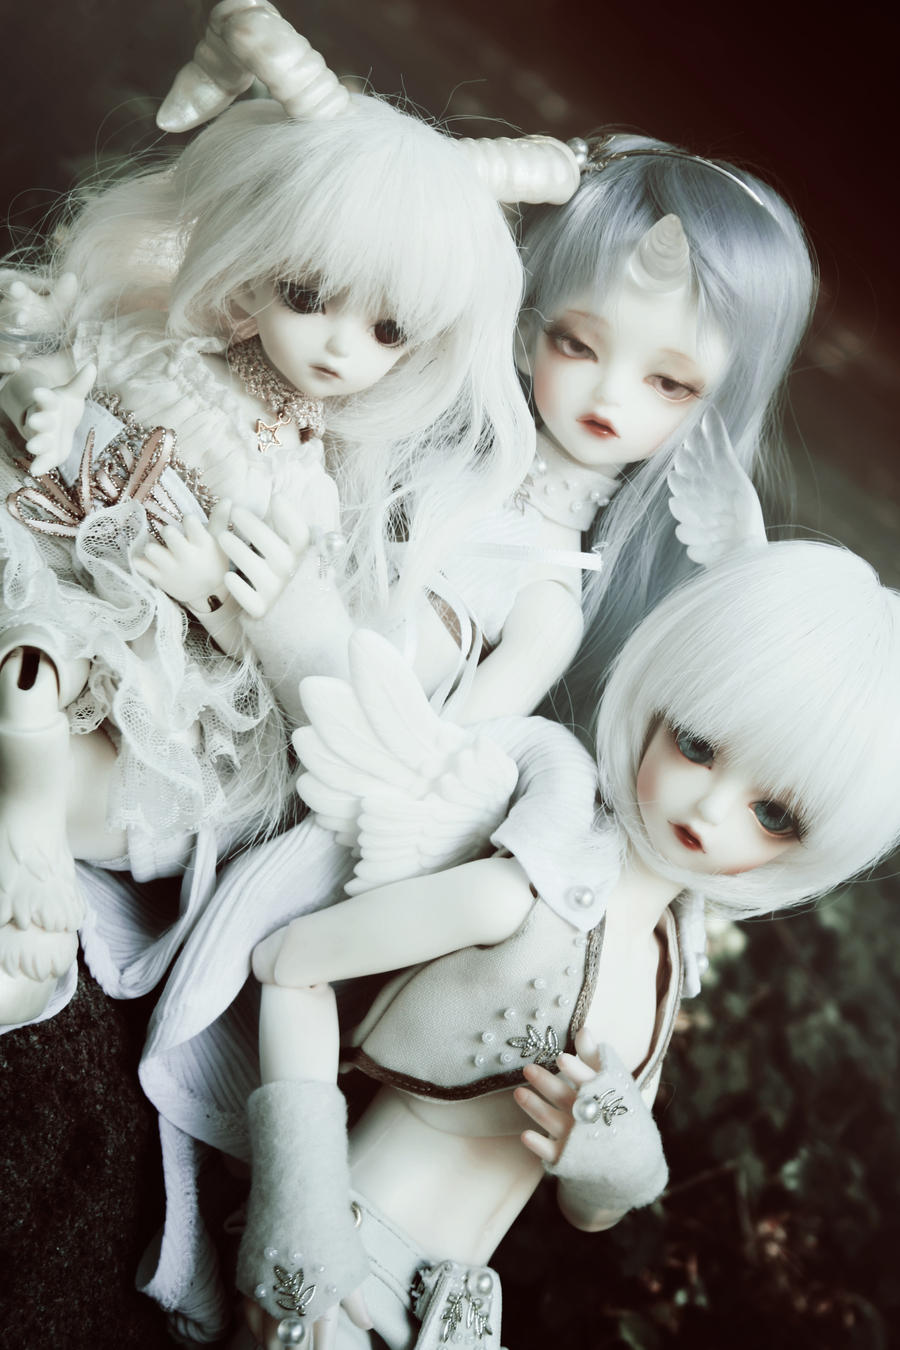 Cold White - Soom Shale and Beyla by Kaalii